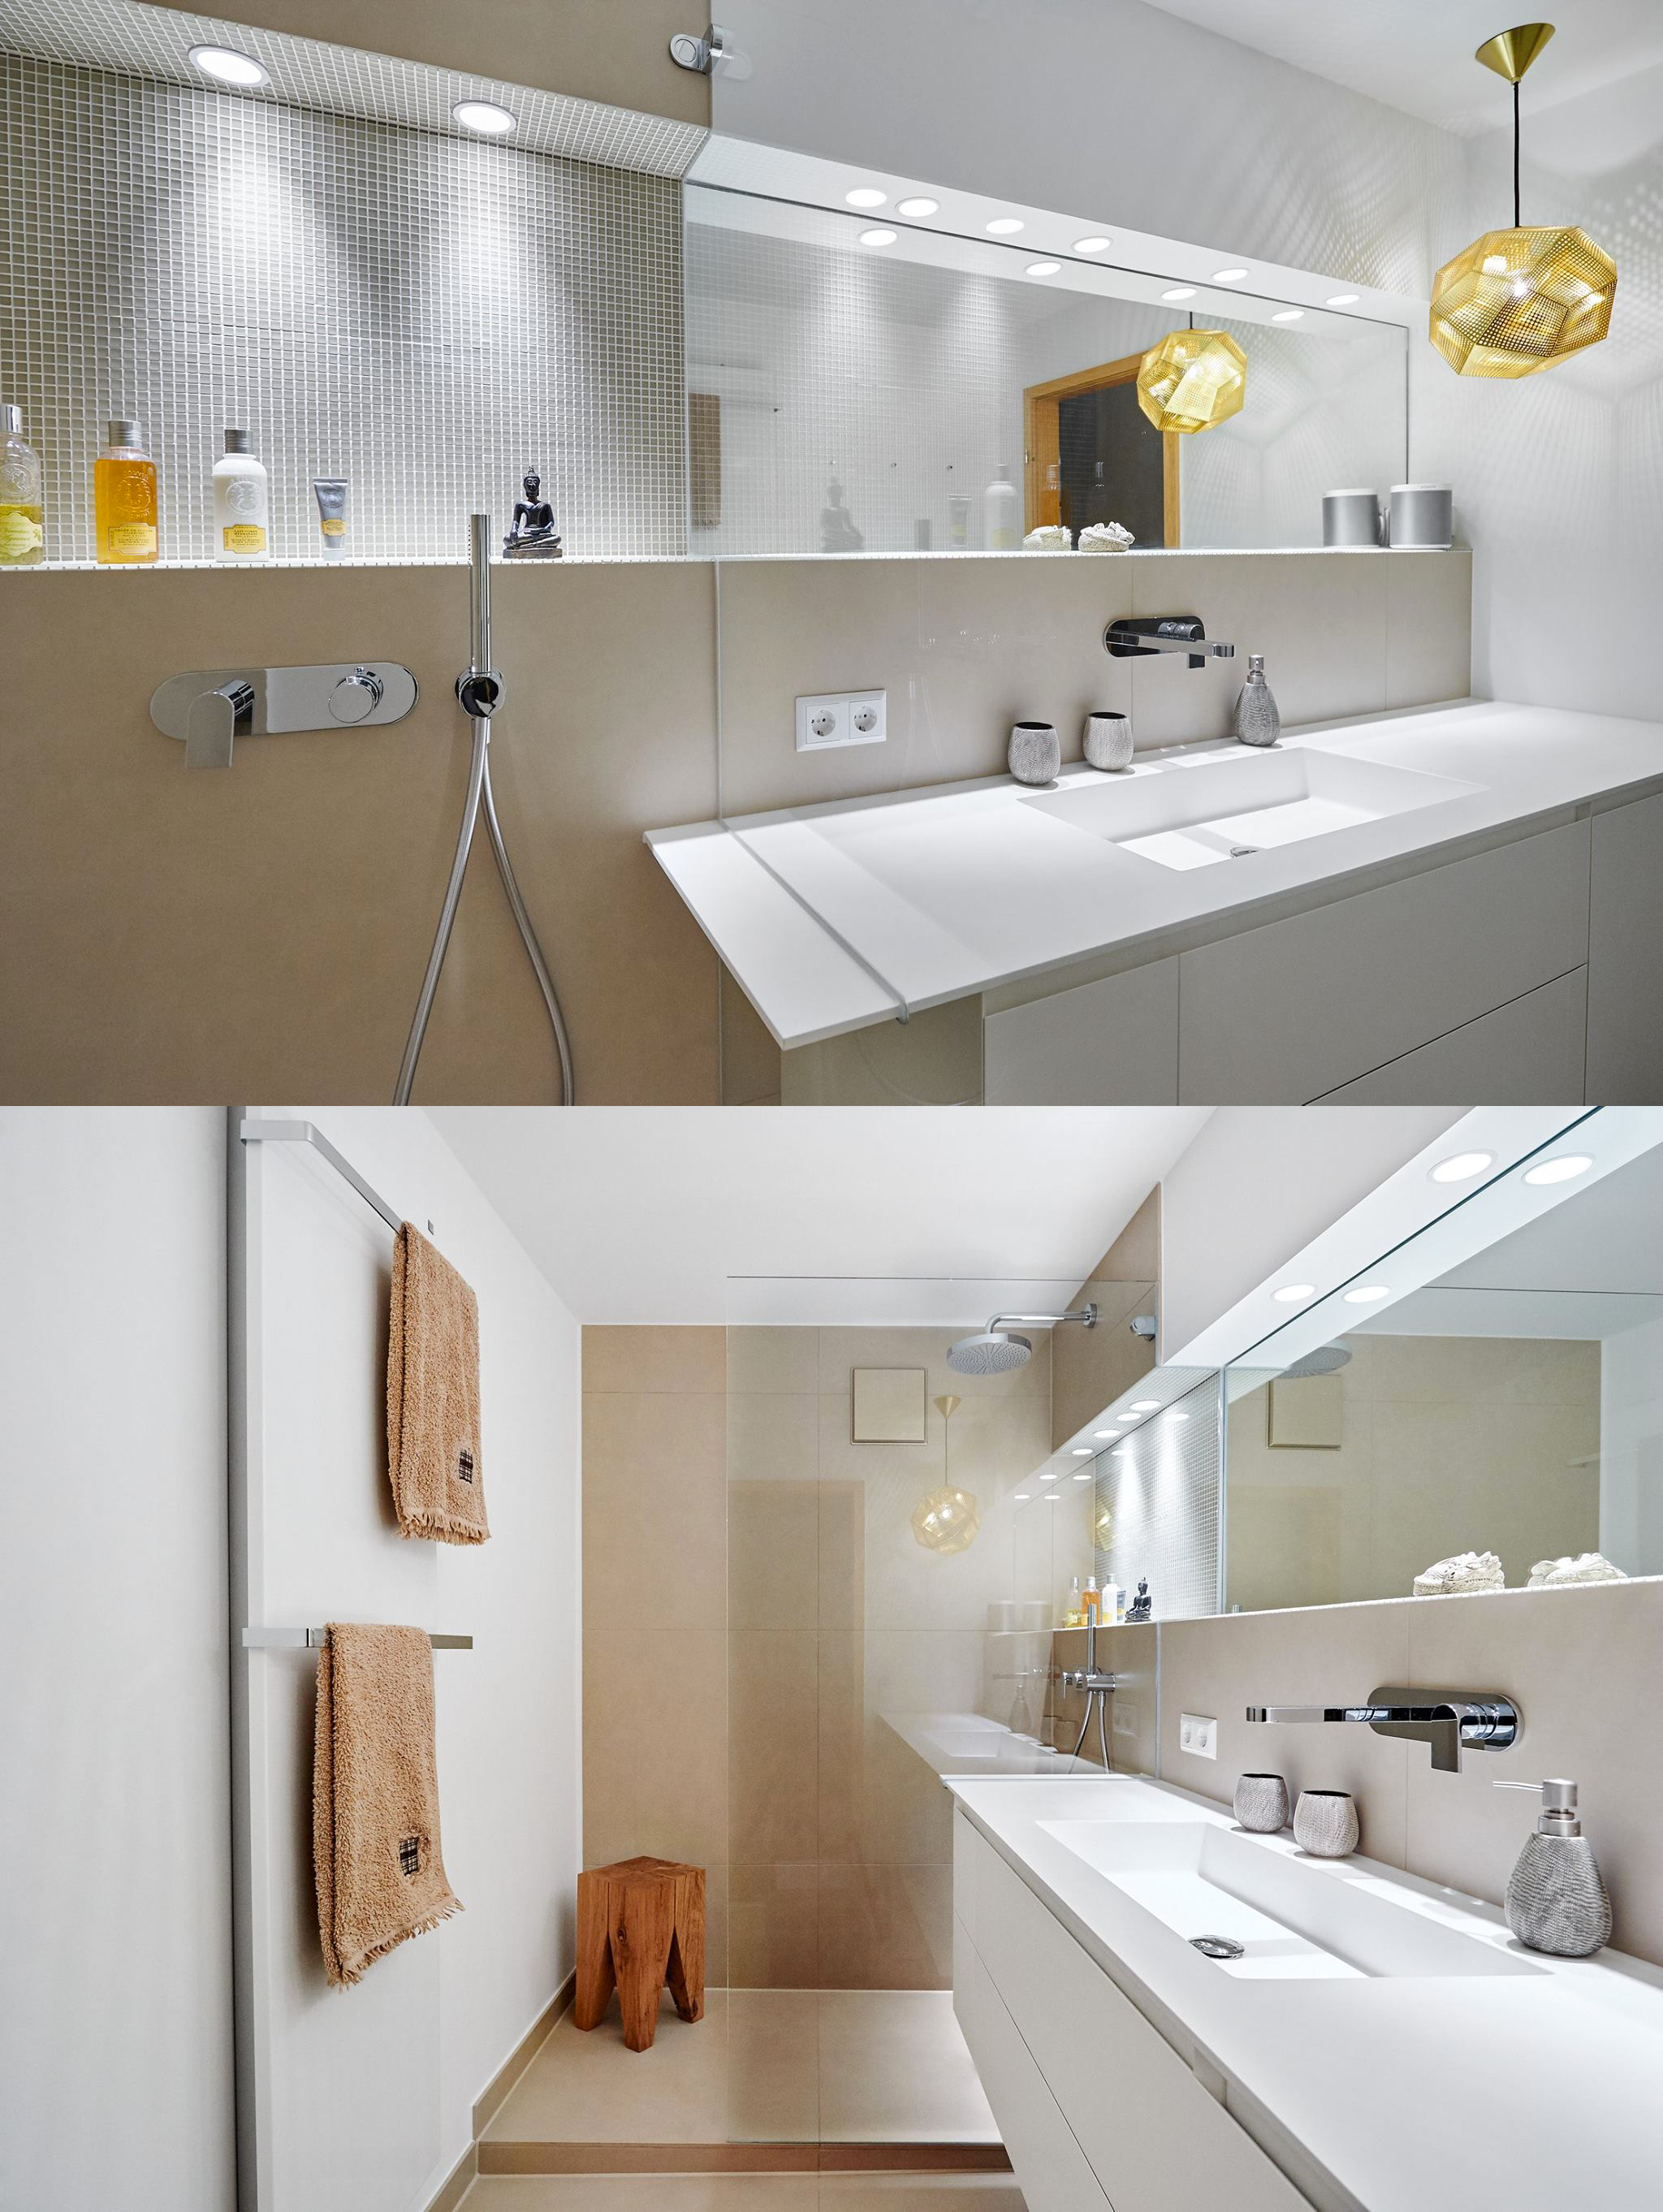 Bathroom Project In Geislingen Germany Realized By Frick Badezimmer Ulm Using Ideagroup Furniture And Fant Bathroom Furniture Modern Modern Bathroom Bathroom